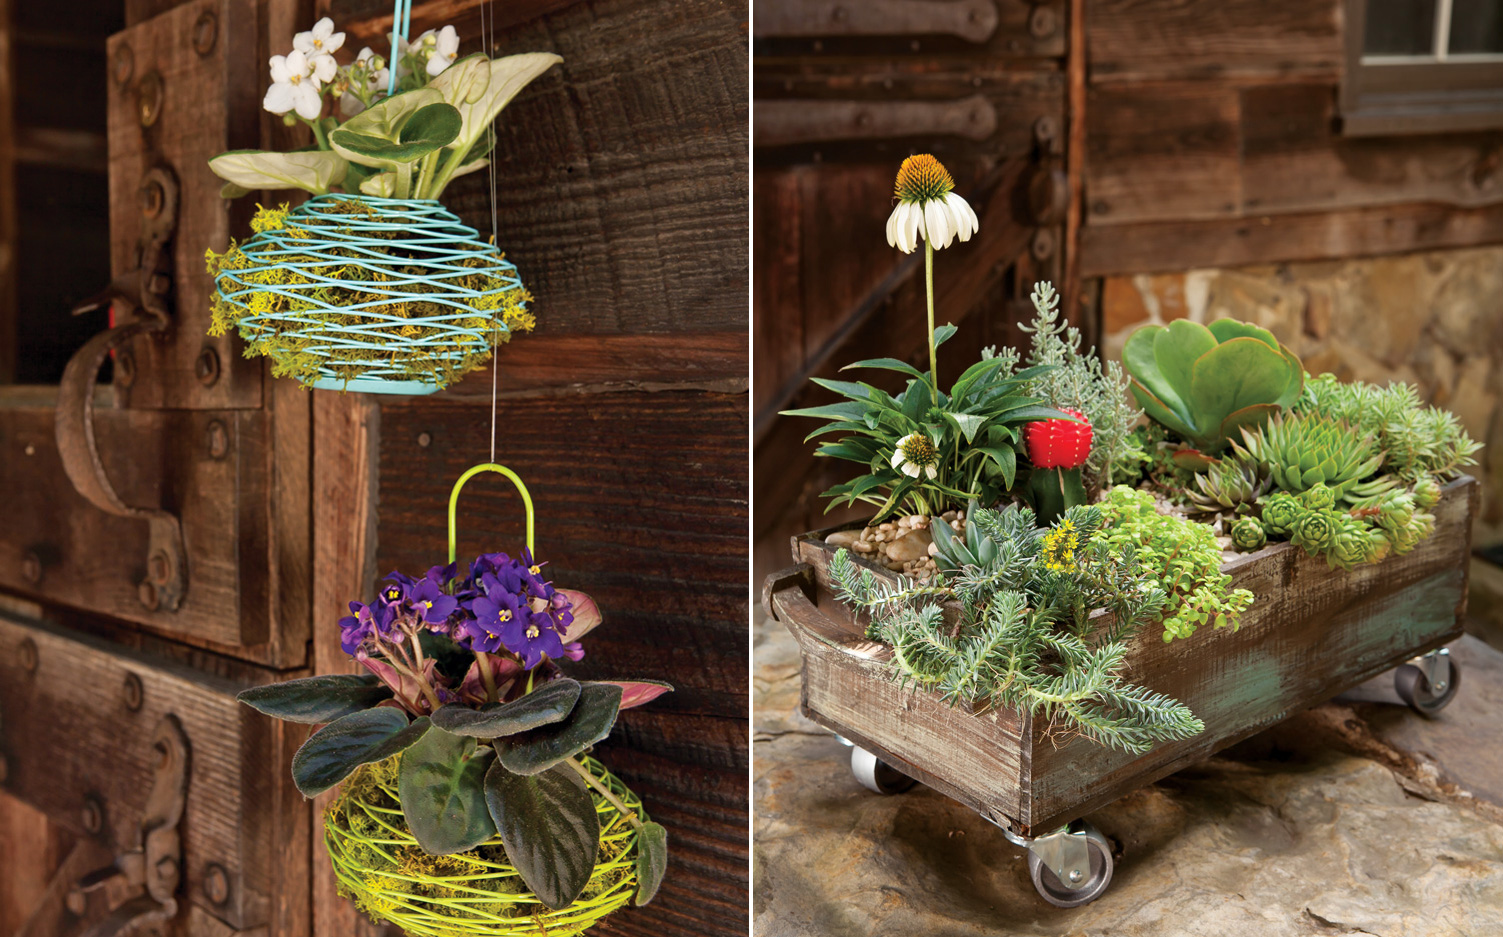 A picture of creative floral containers